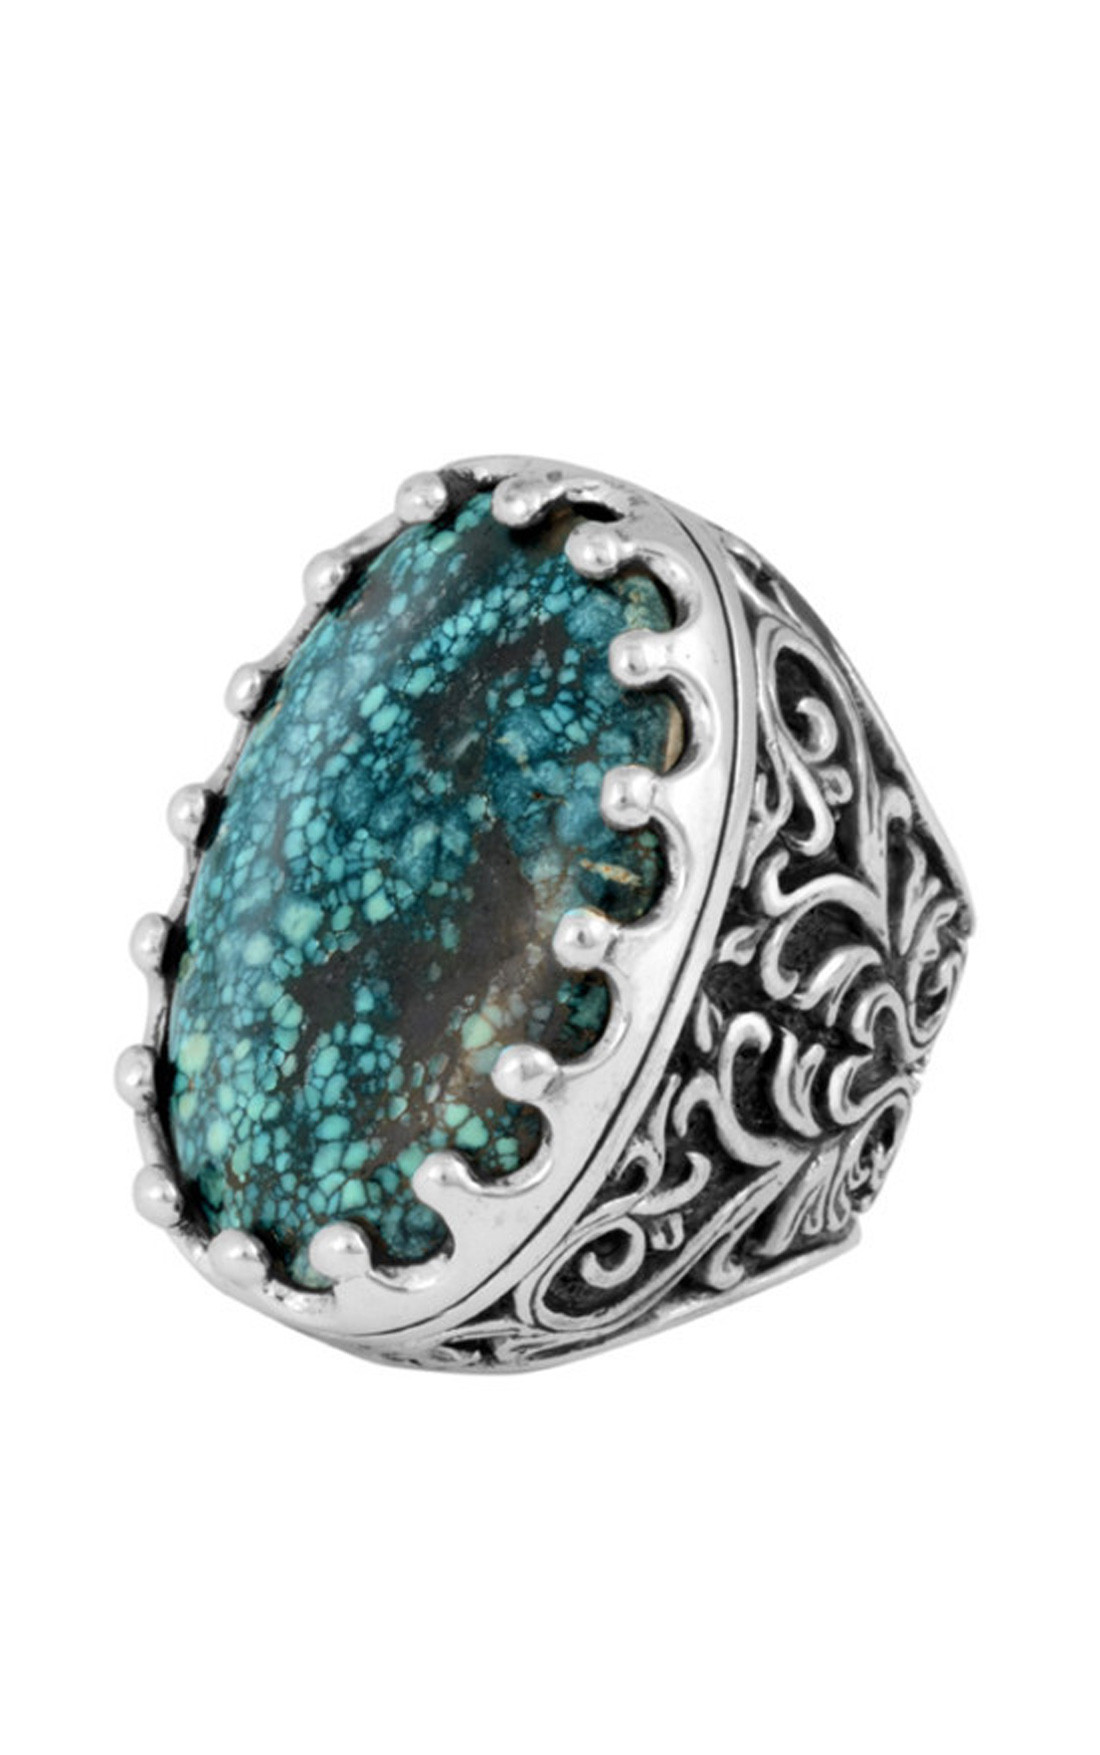 King Baby - Great Baroque Ring with Top Hat Spotted Turquoise (K20-5878)